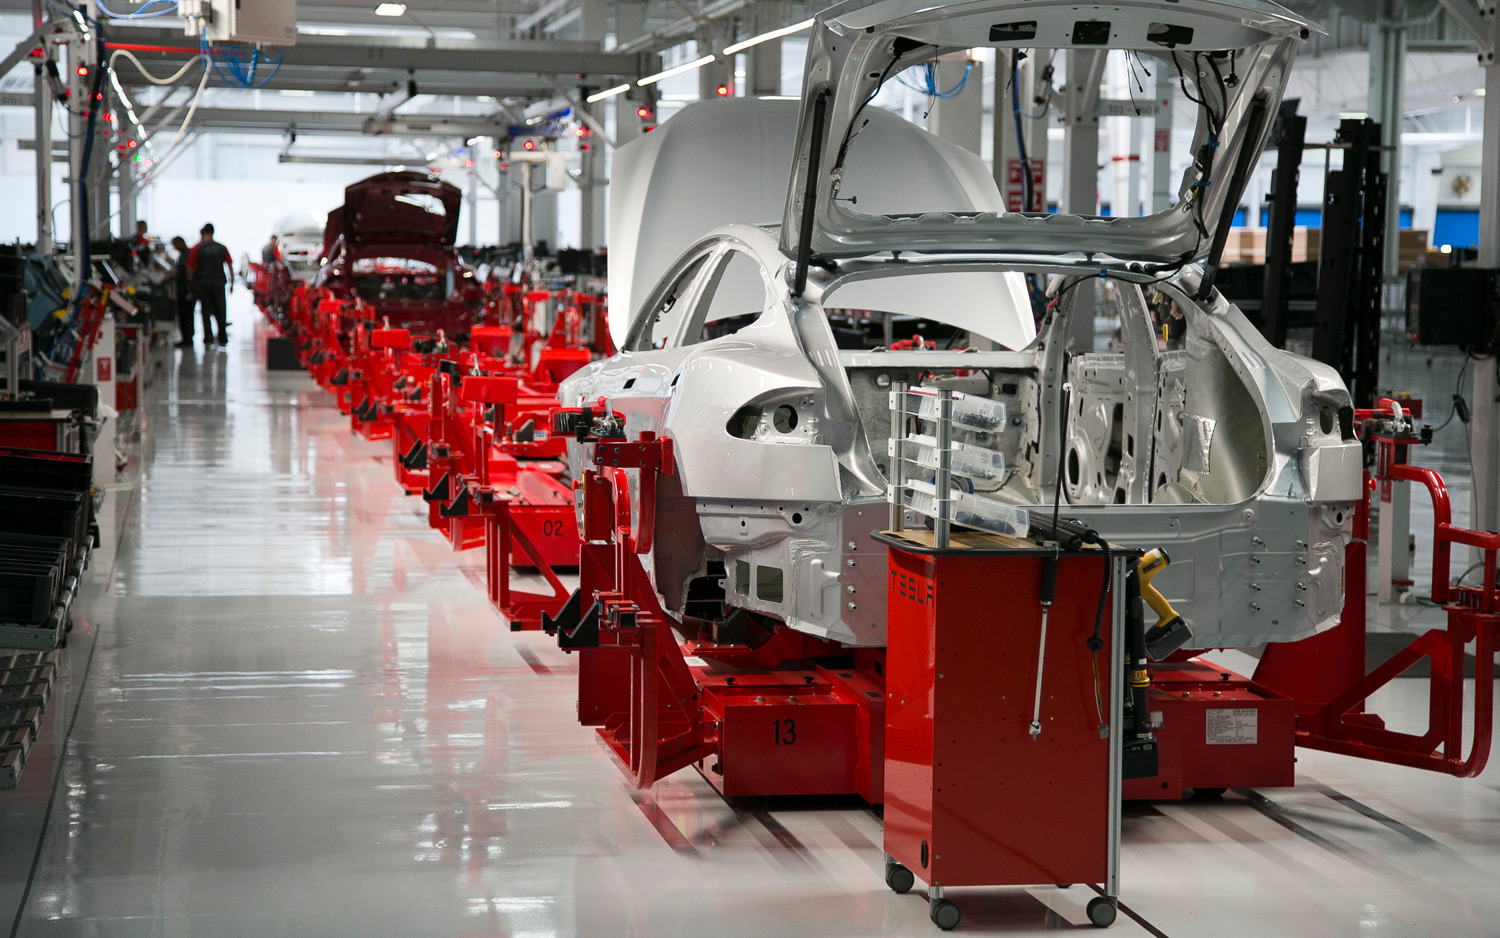 Tesla acquires Grohmann Engineering to maximize vehicle production